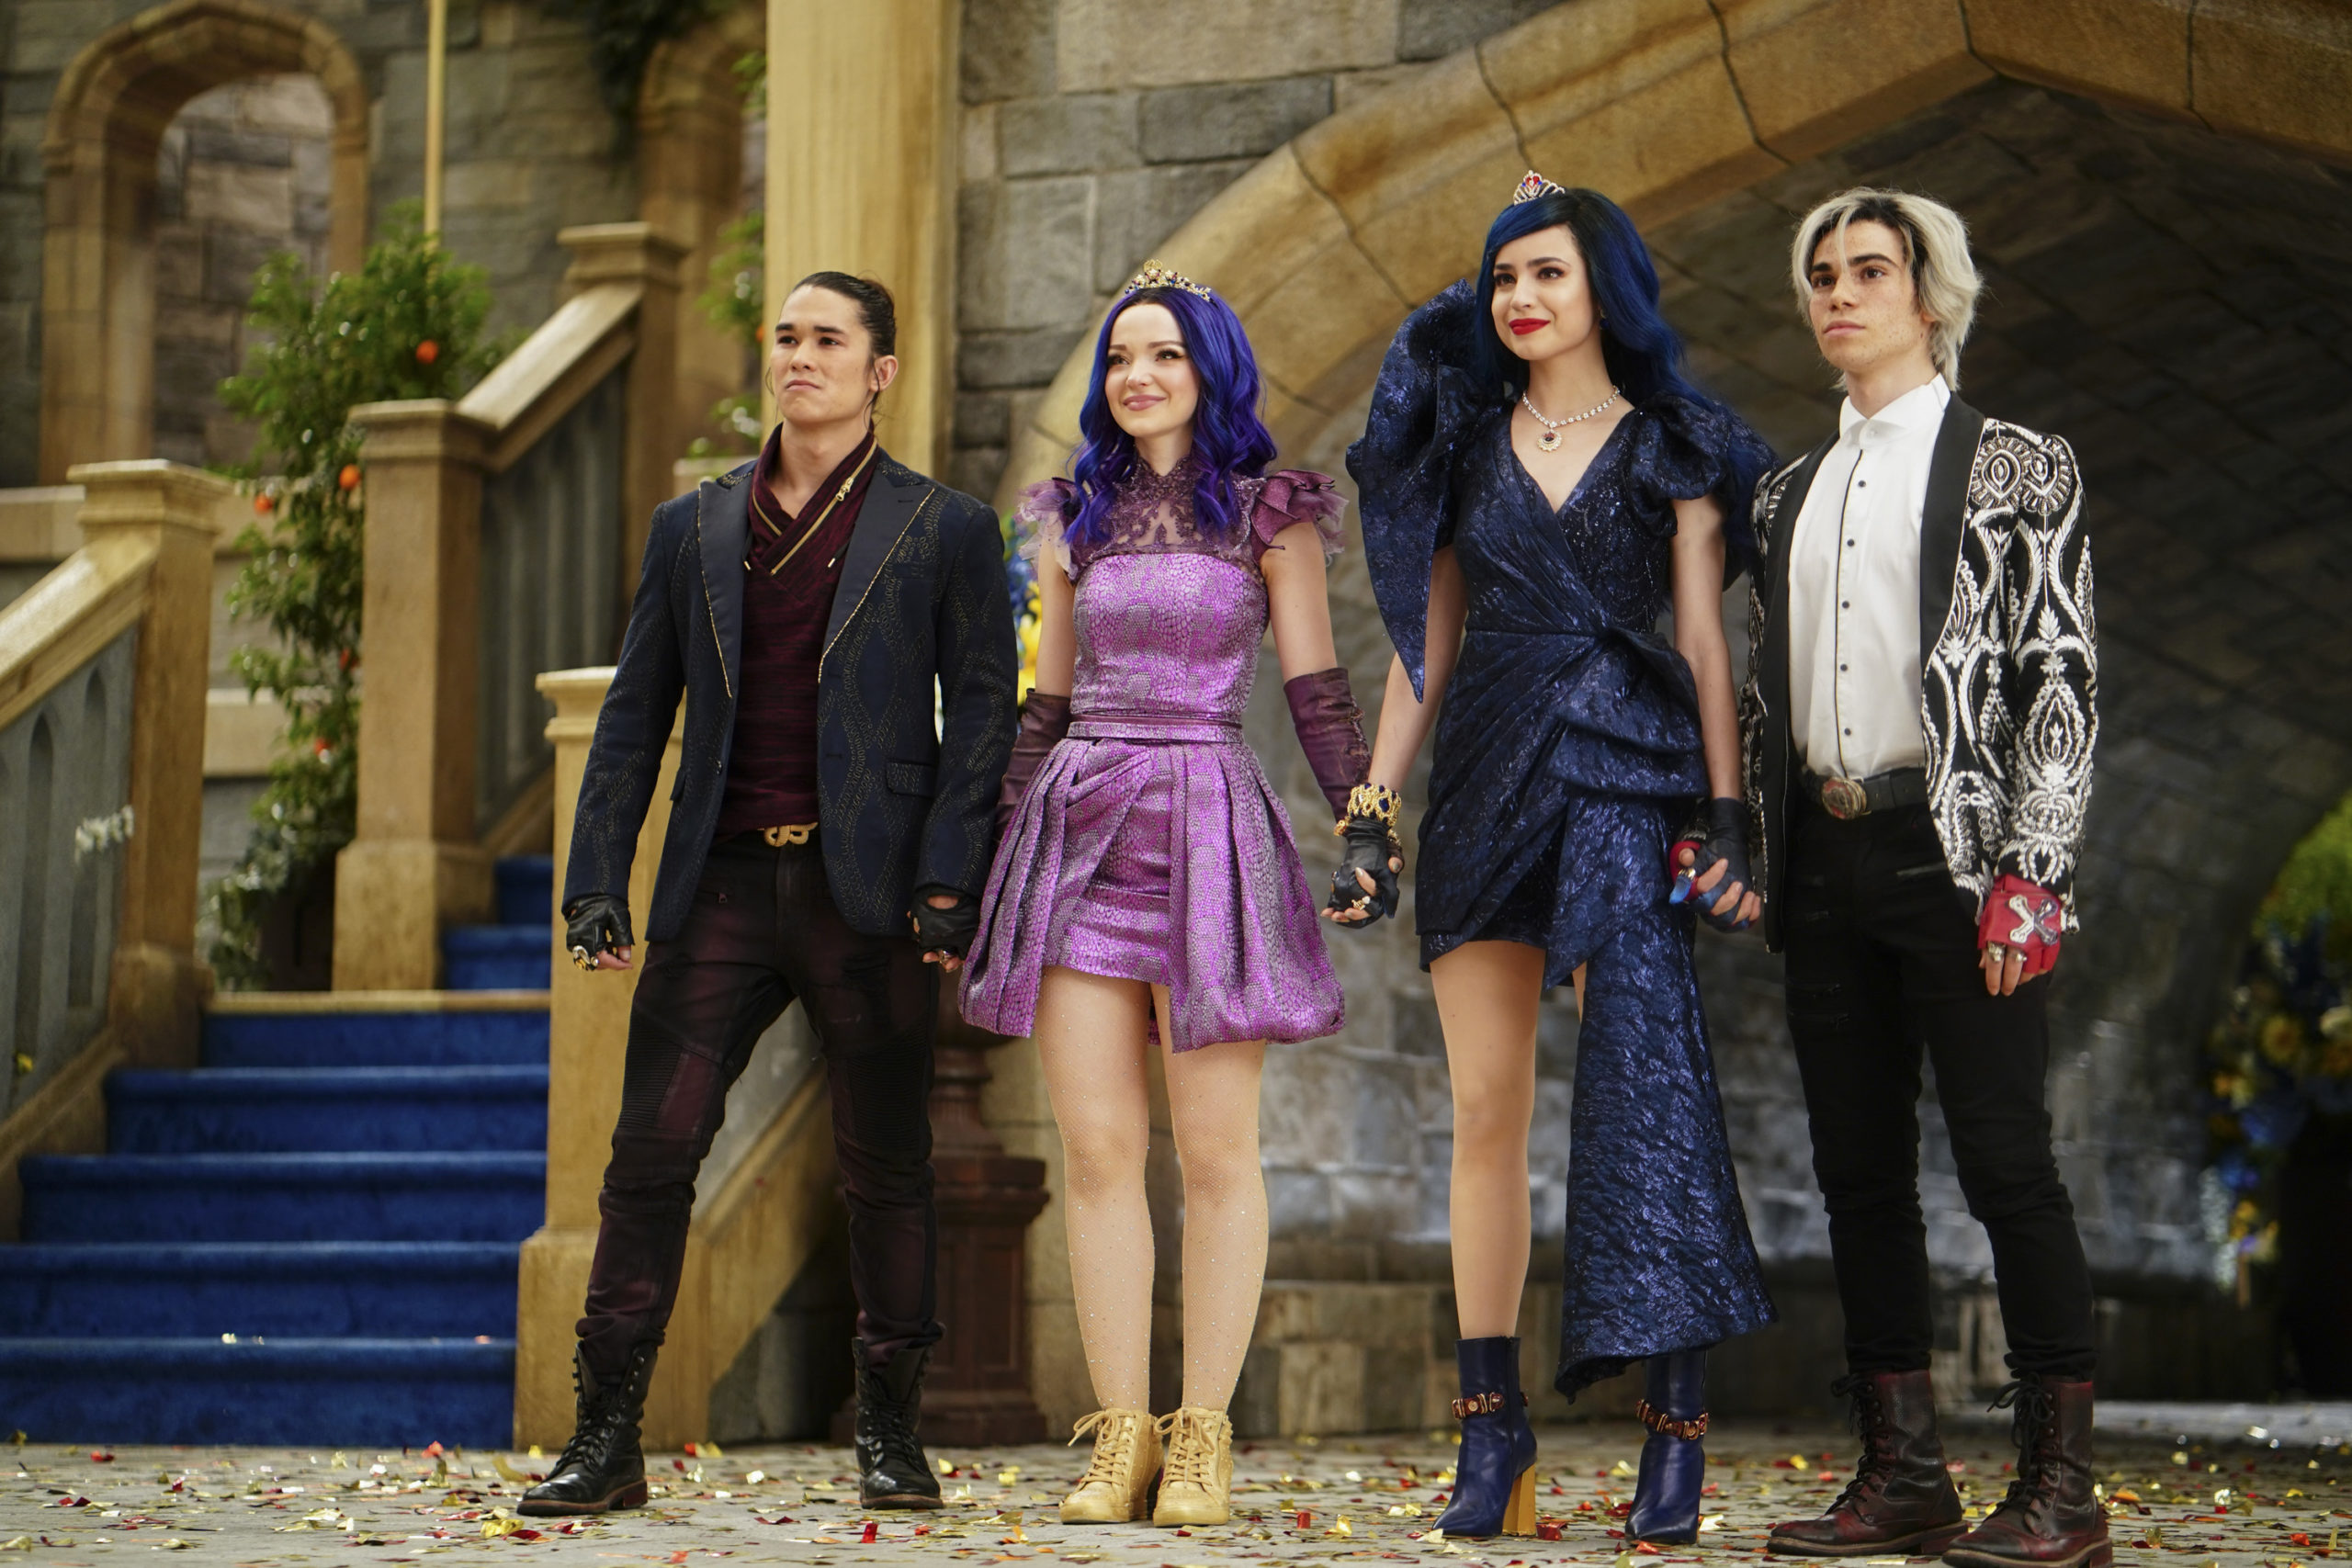 """DESCENDANTS 3 - This highly anticipated third installment in the global hit Disney Channel Original Movie franchise continues the contemporary saga of good versus evil as the teenage daughters and sons of Disney's most infamous villains-Mal, Evie, Carlos and Jay (also known as the villain kids or VKs)-return to the Isle of the Lost to recruit a new batch of villainous offspring to join them at Auradon Prep. When a barrier breach jeopardizes the safety of Auradon during their departure off the Isle, Mal resolves to permanently close the barrier, fearing that nemeses Uma and Hades will wreak vengeance on the kingdom. Despite her decision, an unfathomable dark force threatens the people of Auradon and it's up to Mal and the VKs to save everyone in their most epic battle yet. """"Descendants 3"""" is set to premiere on FRIDAY, AUG. 2 (8:00-10:00 p.m. EDT), on Disney Channel and DisneyNOW. (Disney Channel/David Bukach) BOOBOO STEWART, DOVE CAMERON, SOFIA CARSON, CAMERON BOYCE"""